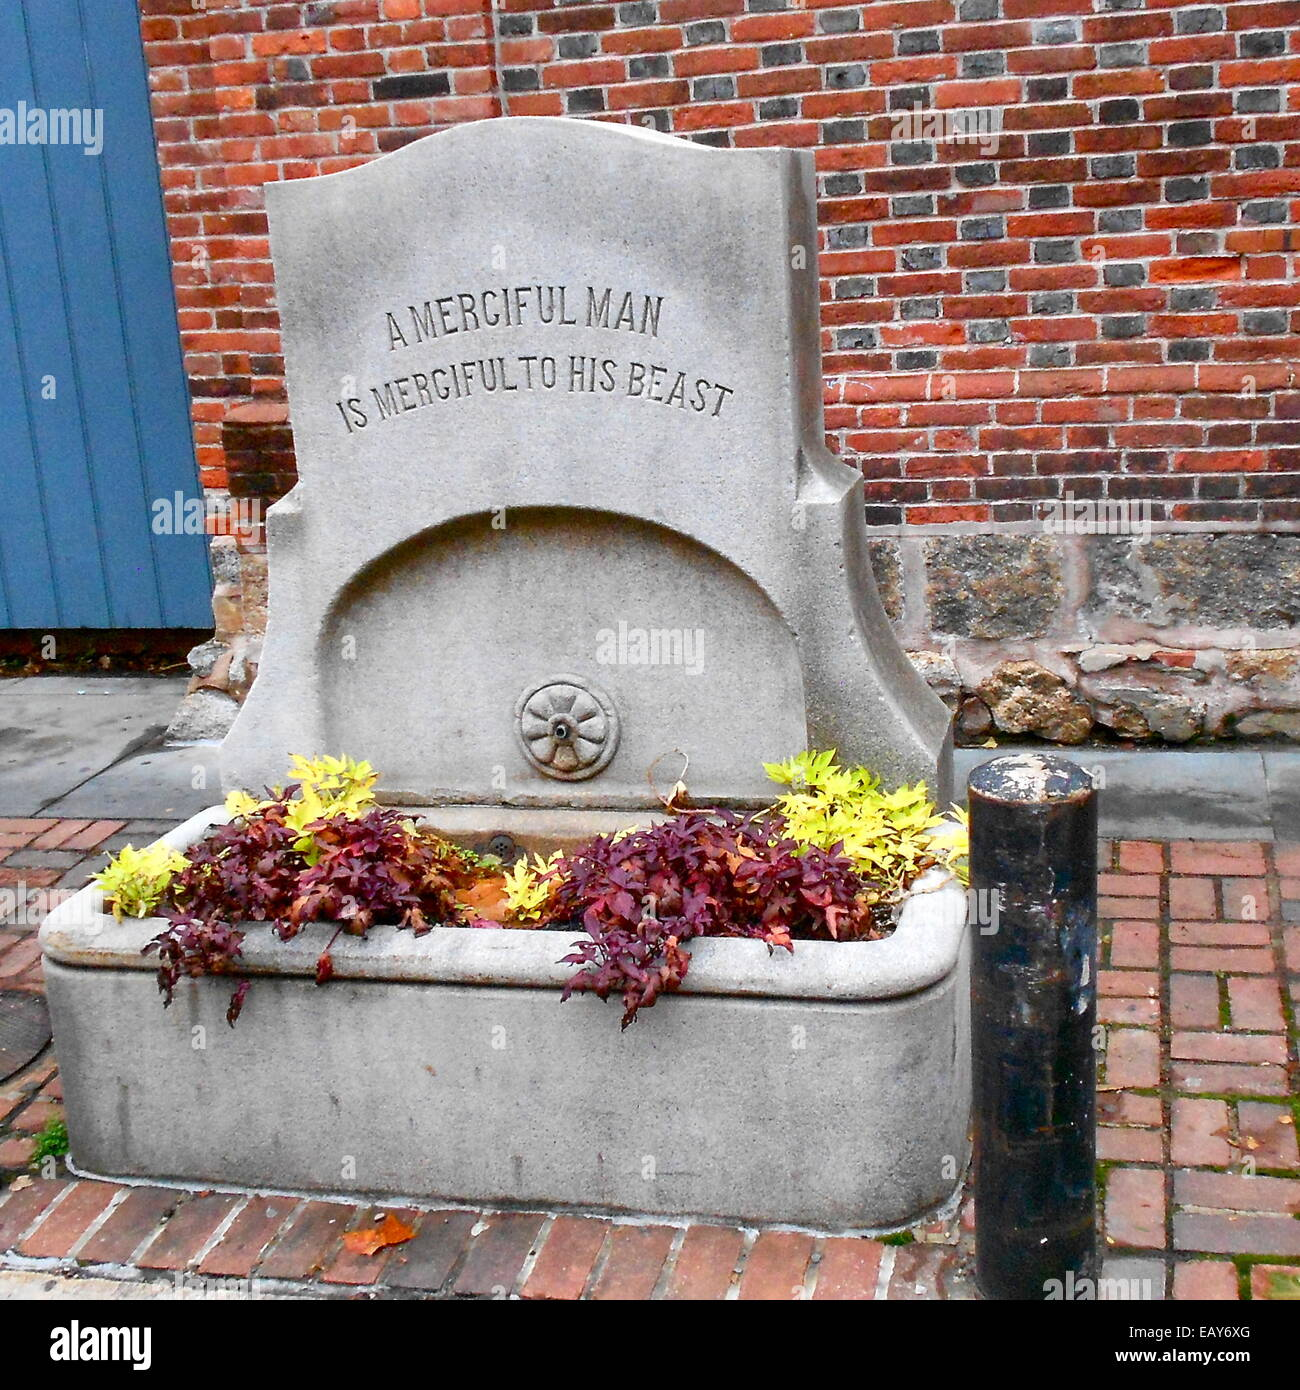 Water trough on 9th Street in Philadelphia, near Pennsylvania Hospital - Stock Image